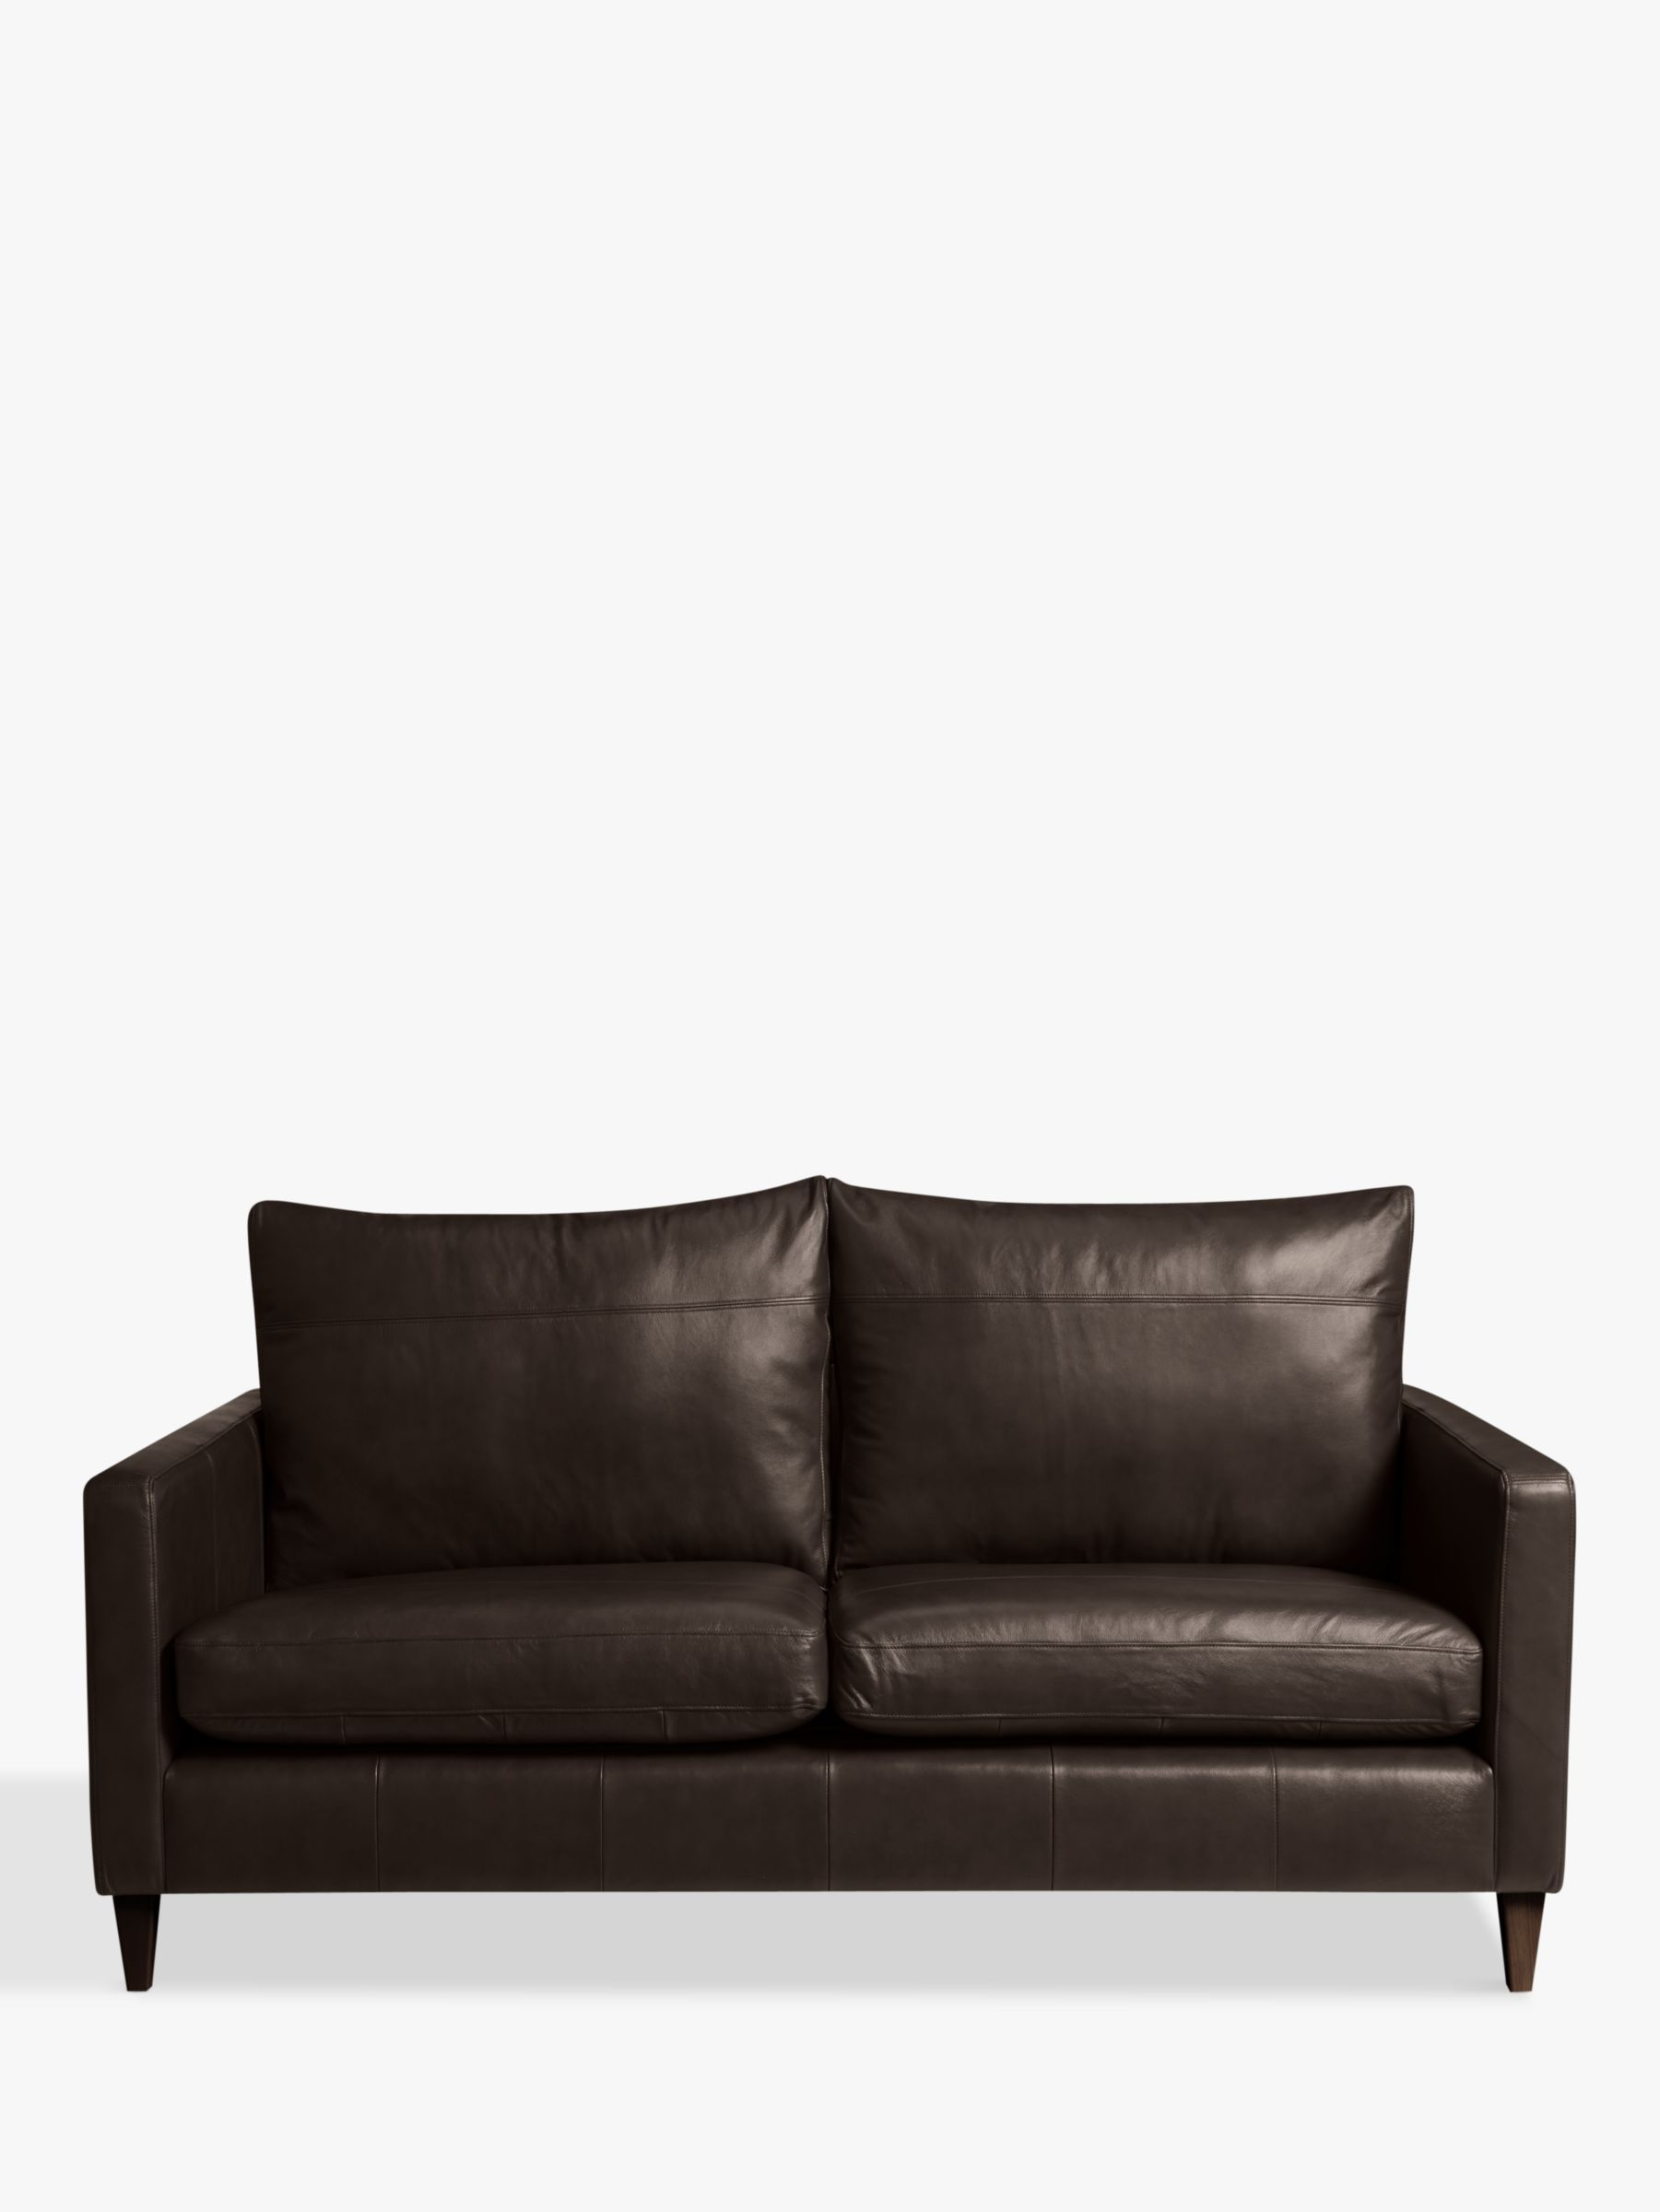 John Lewis Partners Bailey Medium 2 Seater Leather Sofa Dark Leg Leather Sofa 3 Seater Leather Sofa Sofa